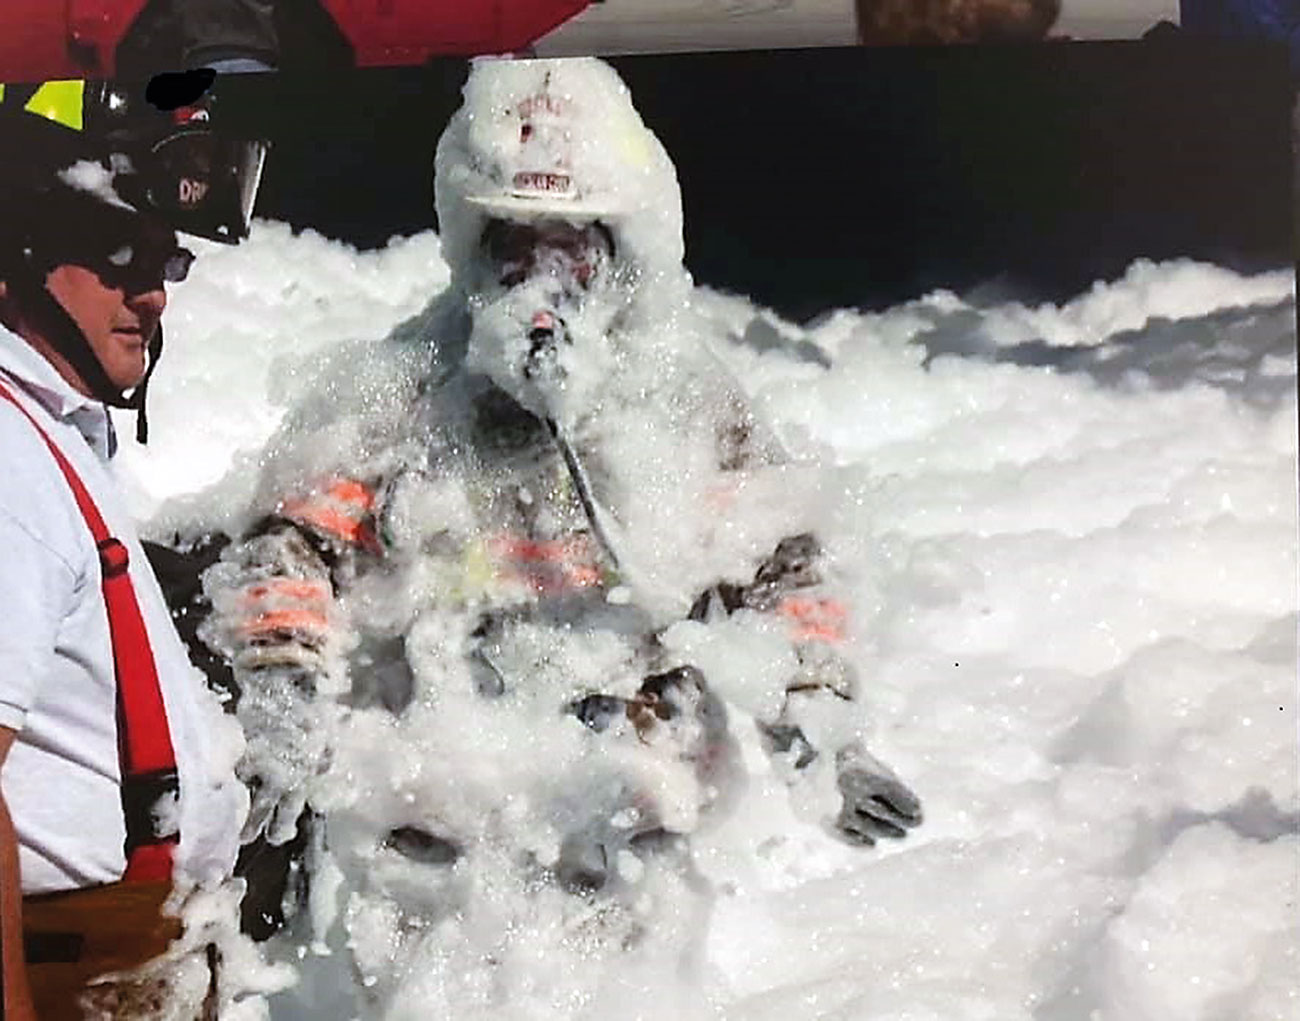 Studies will need to be constructed to consider what PFAS-containing firefighting foam does when covering or coating Personal Protective Equipment (PPE). Independently tested PPE contained more PFAS in the PPE textiles than as required by National Fire Protection Association (NFPA) standards according to a recent study.